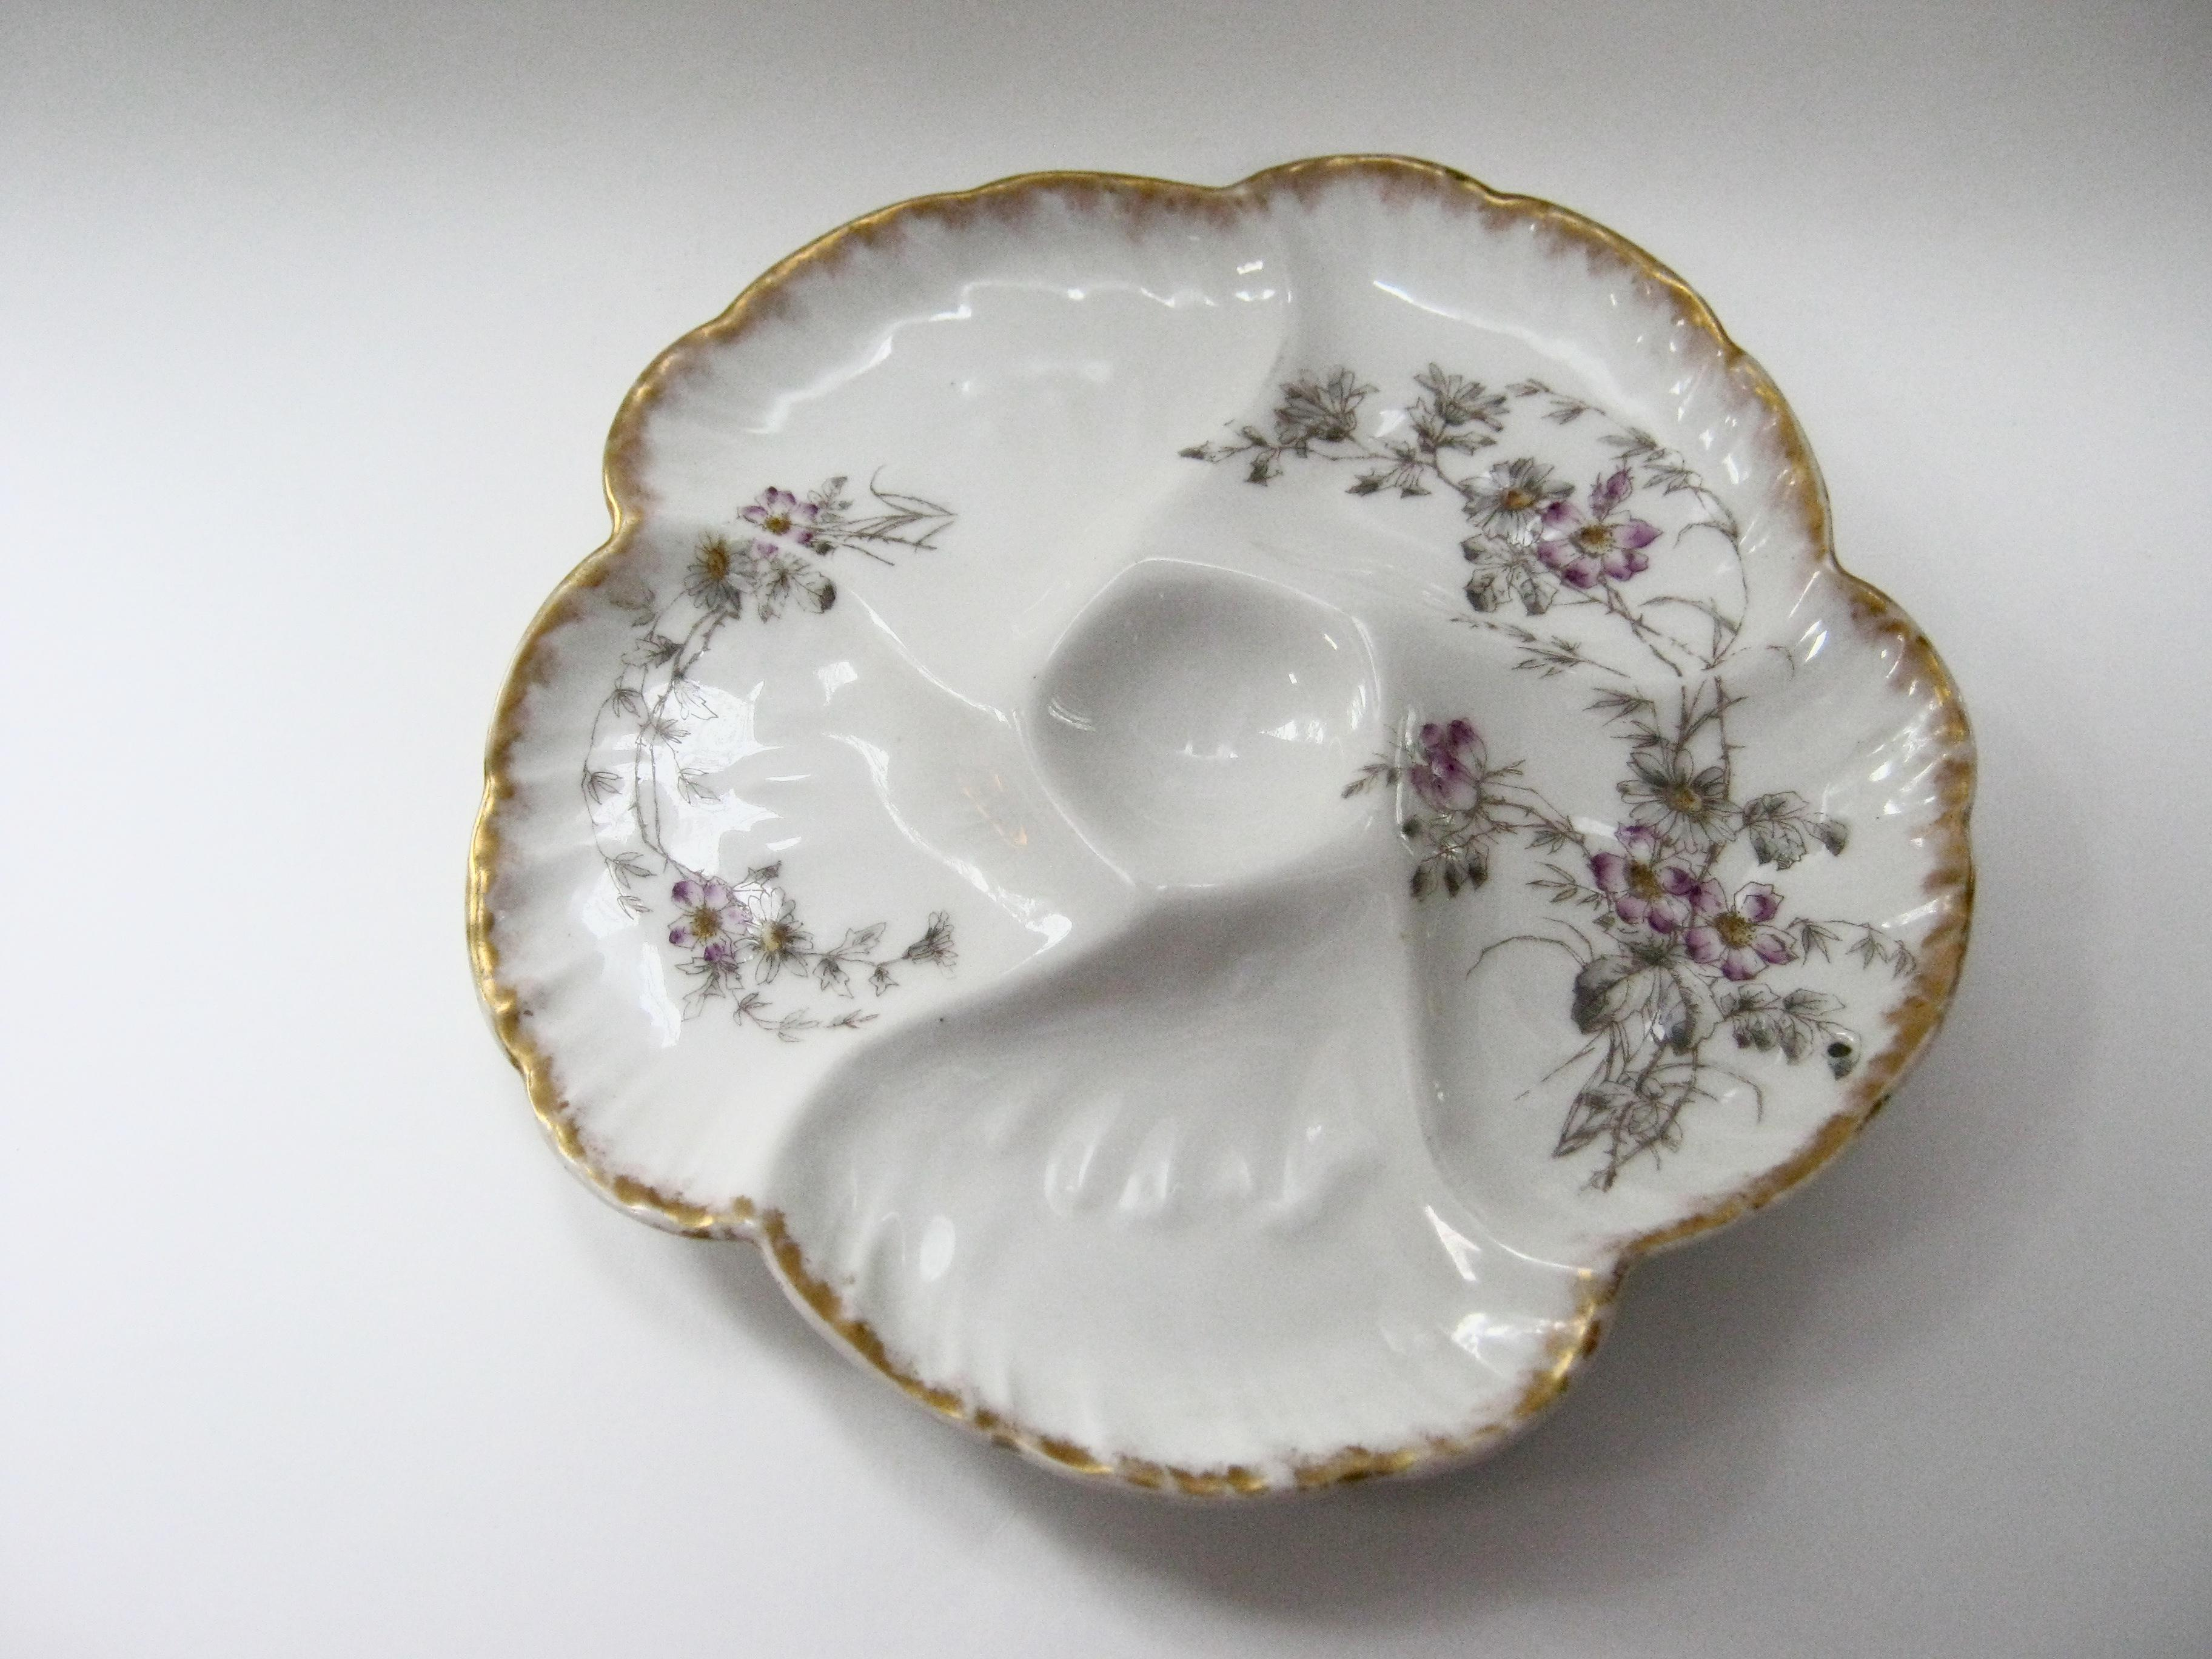 Antique Limoges France Hand Decorated Oyster Plate - Image 5 of 5  sc 1 st  Chairish & Antique Limoges France Hand Decorated Oyster Plate | Chairish